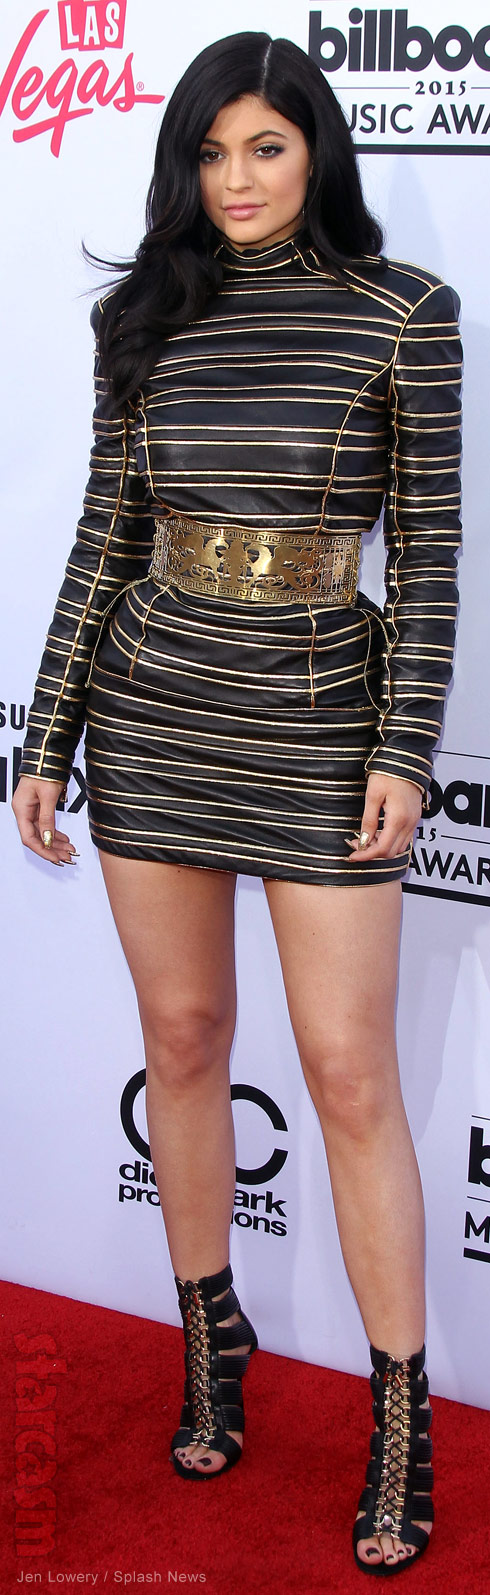 Kylie Jenner 2015 Billboard Music Awards 2015 red carpet full length